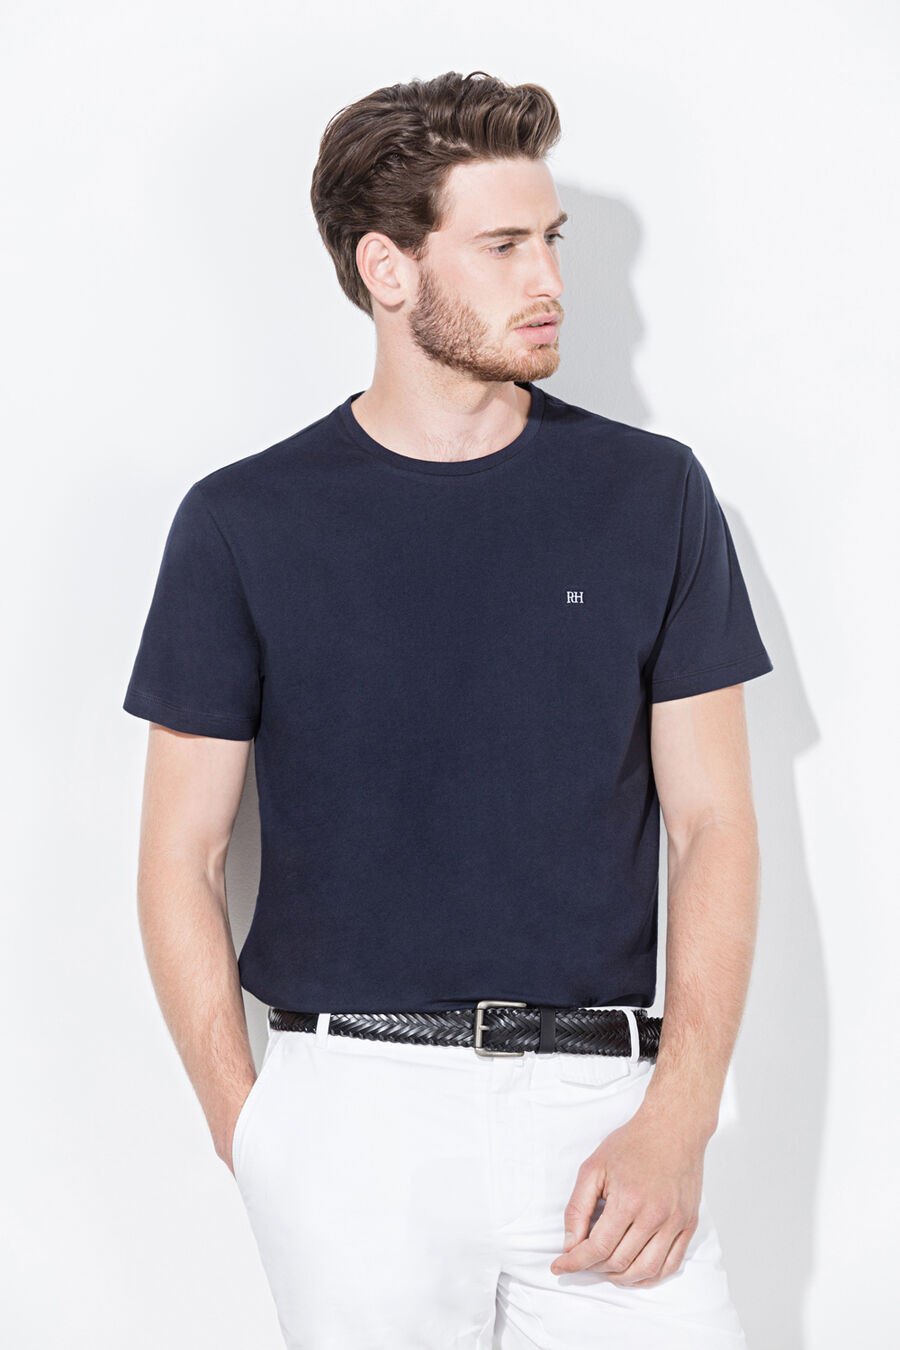 Plain t-shirt with embroidered logo